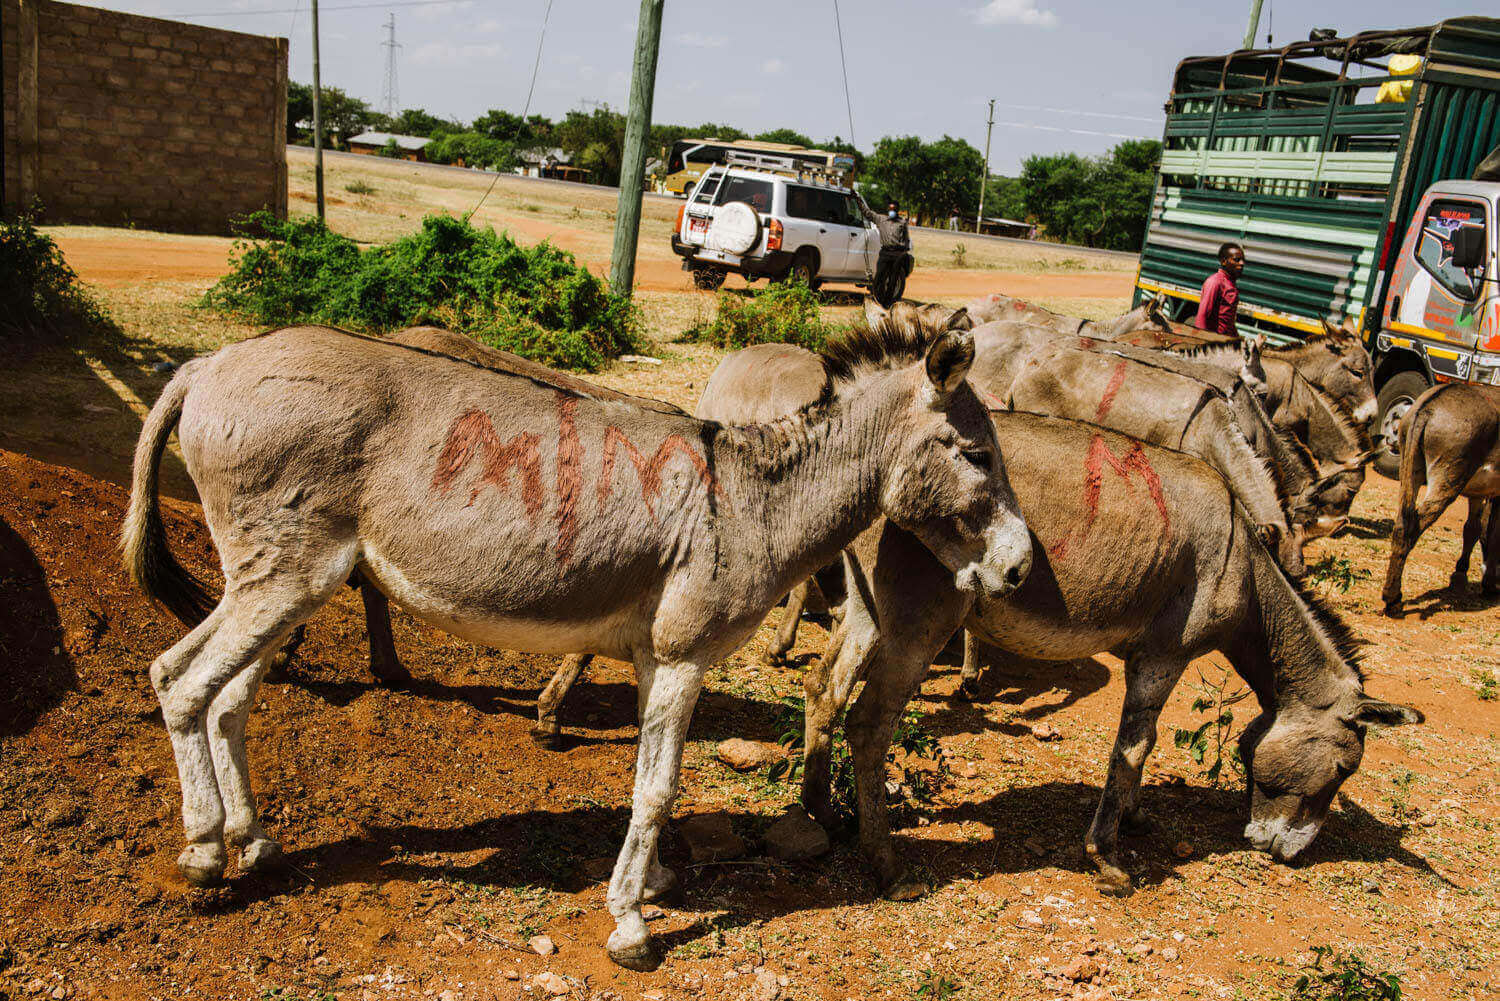 Thousands of donkeys are bludgeoned to death EVERY MONTH at Chinese-run slaughterhouse